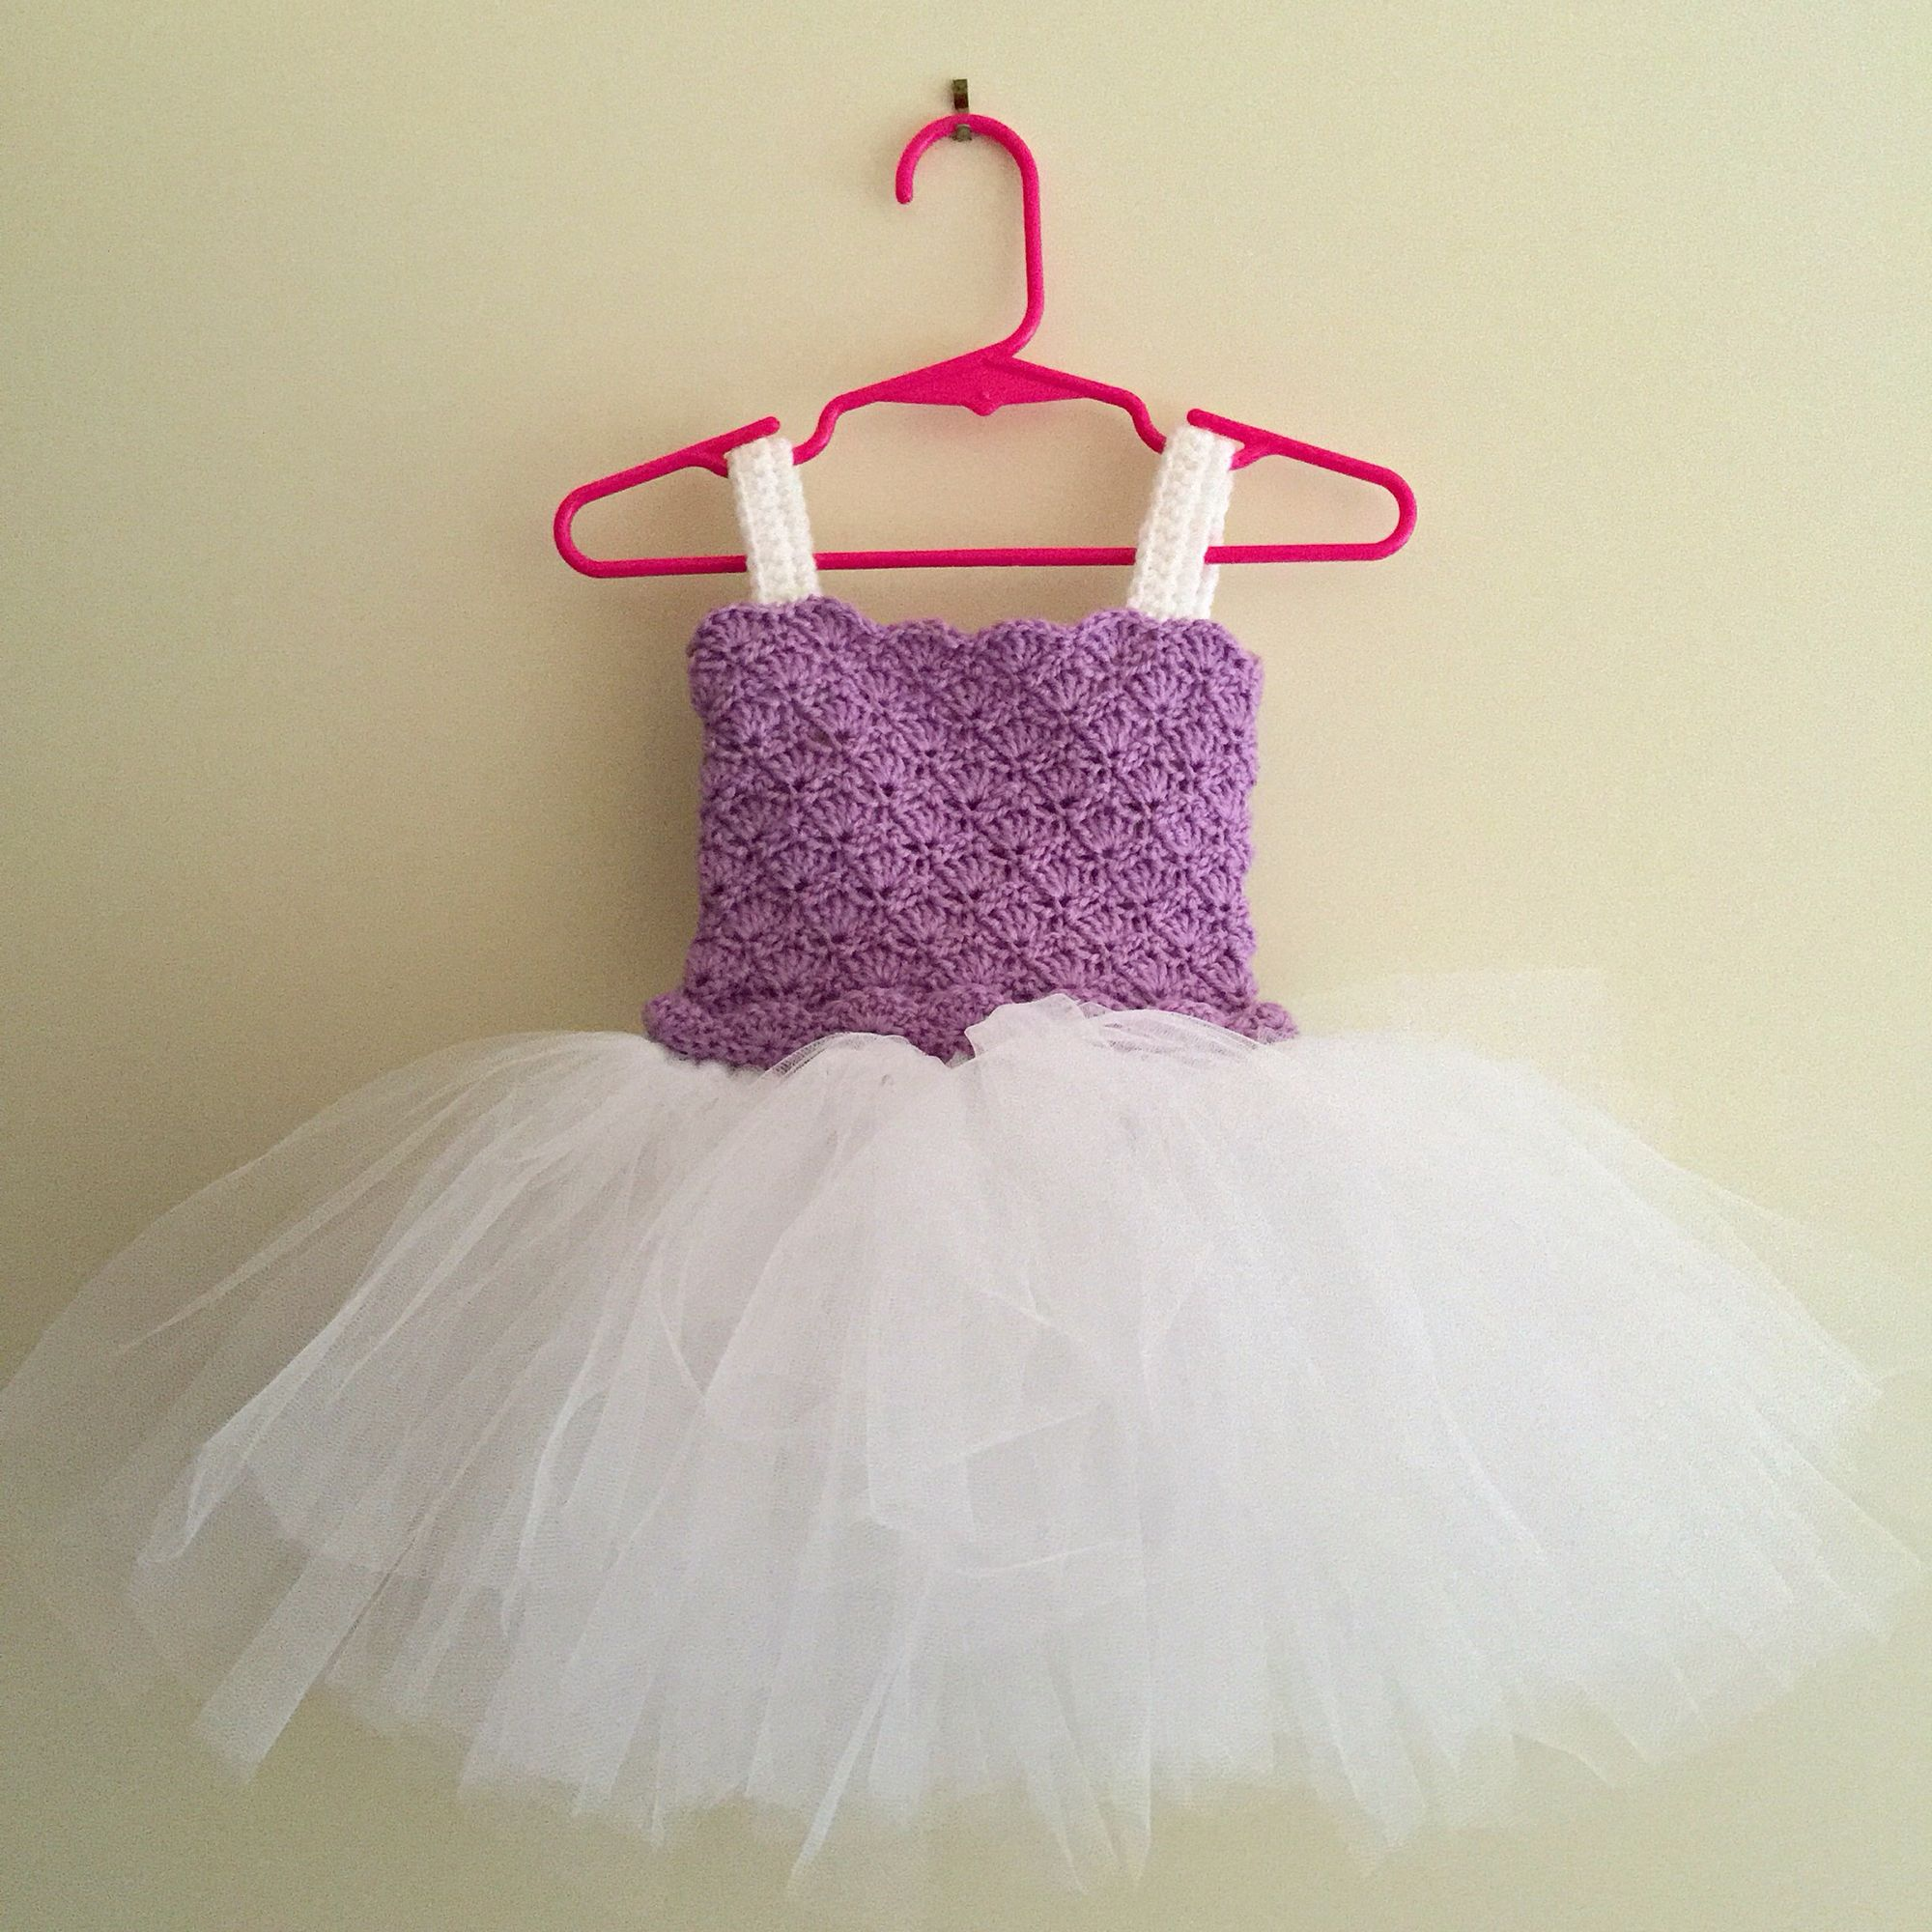 Baby Tutu Dress hand crocheted bodice in shell pattern with